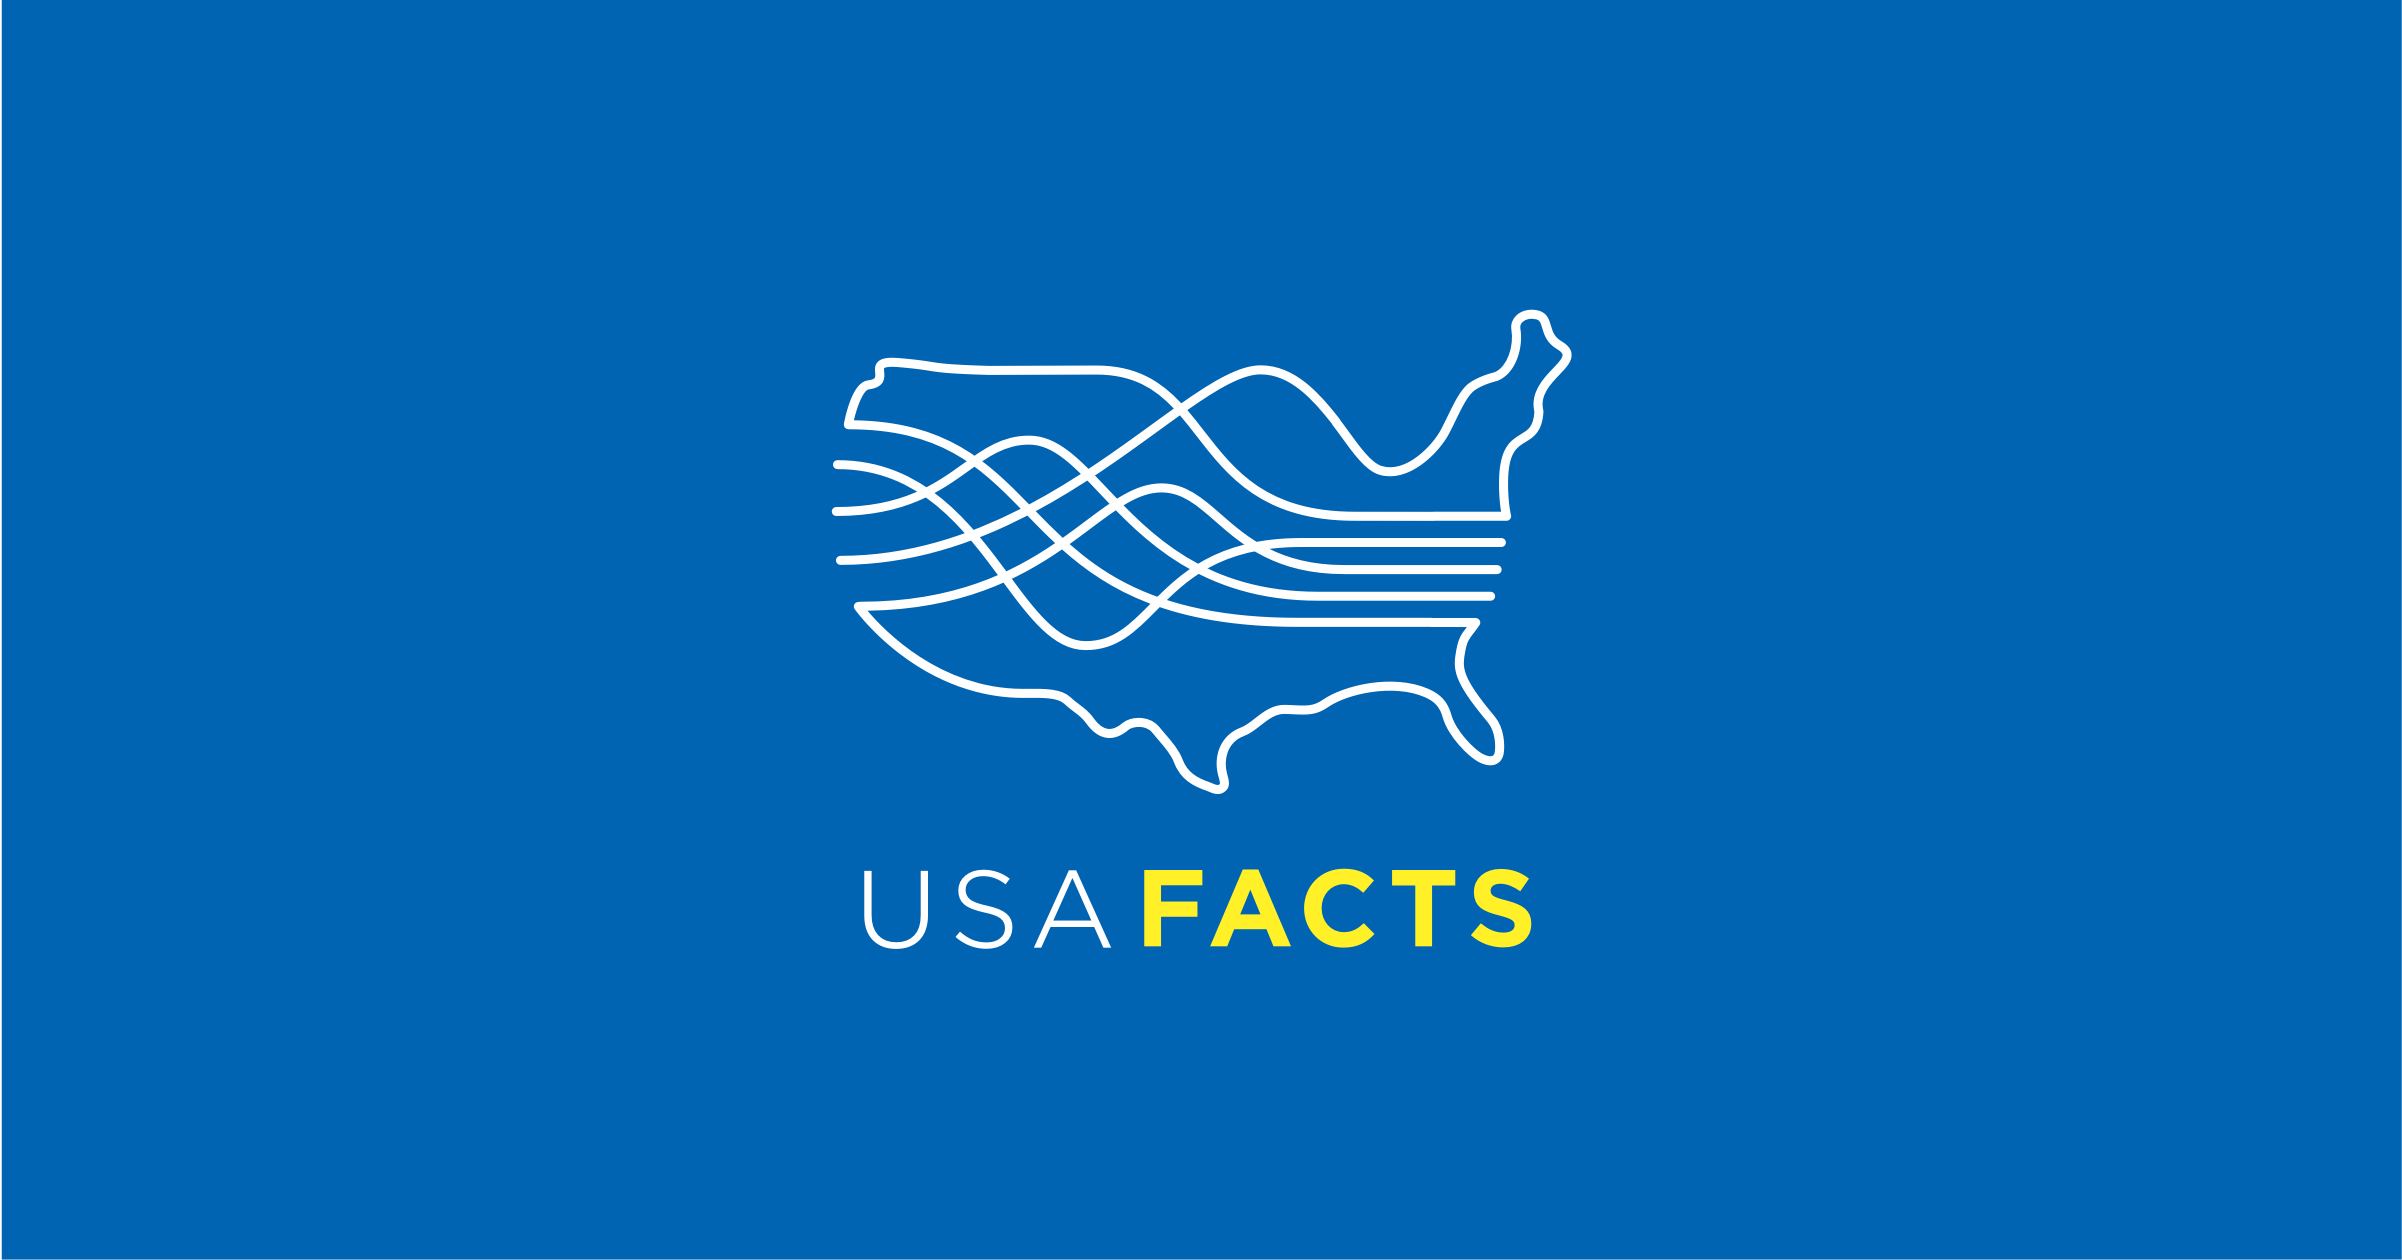 When billionaire Steve Balmer's wife urged him to step up his philanthropy, his first step was to create a nonprofit to conduct a deep dive into available data to find how tax money is spent, who gets help and who needs help. The result was usafacts.org.